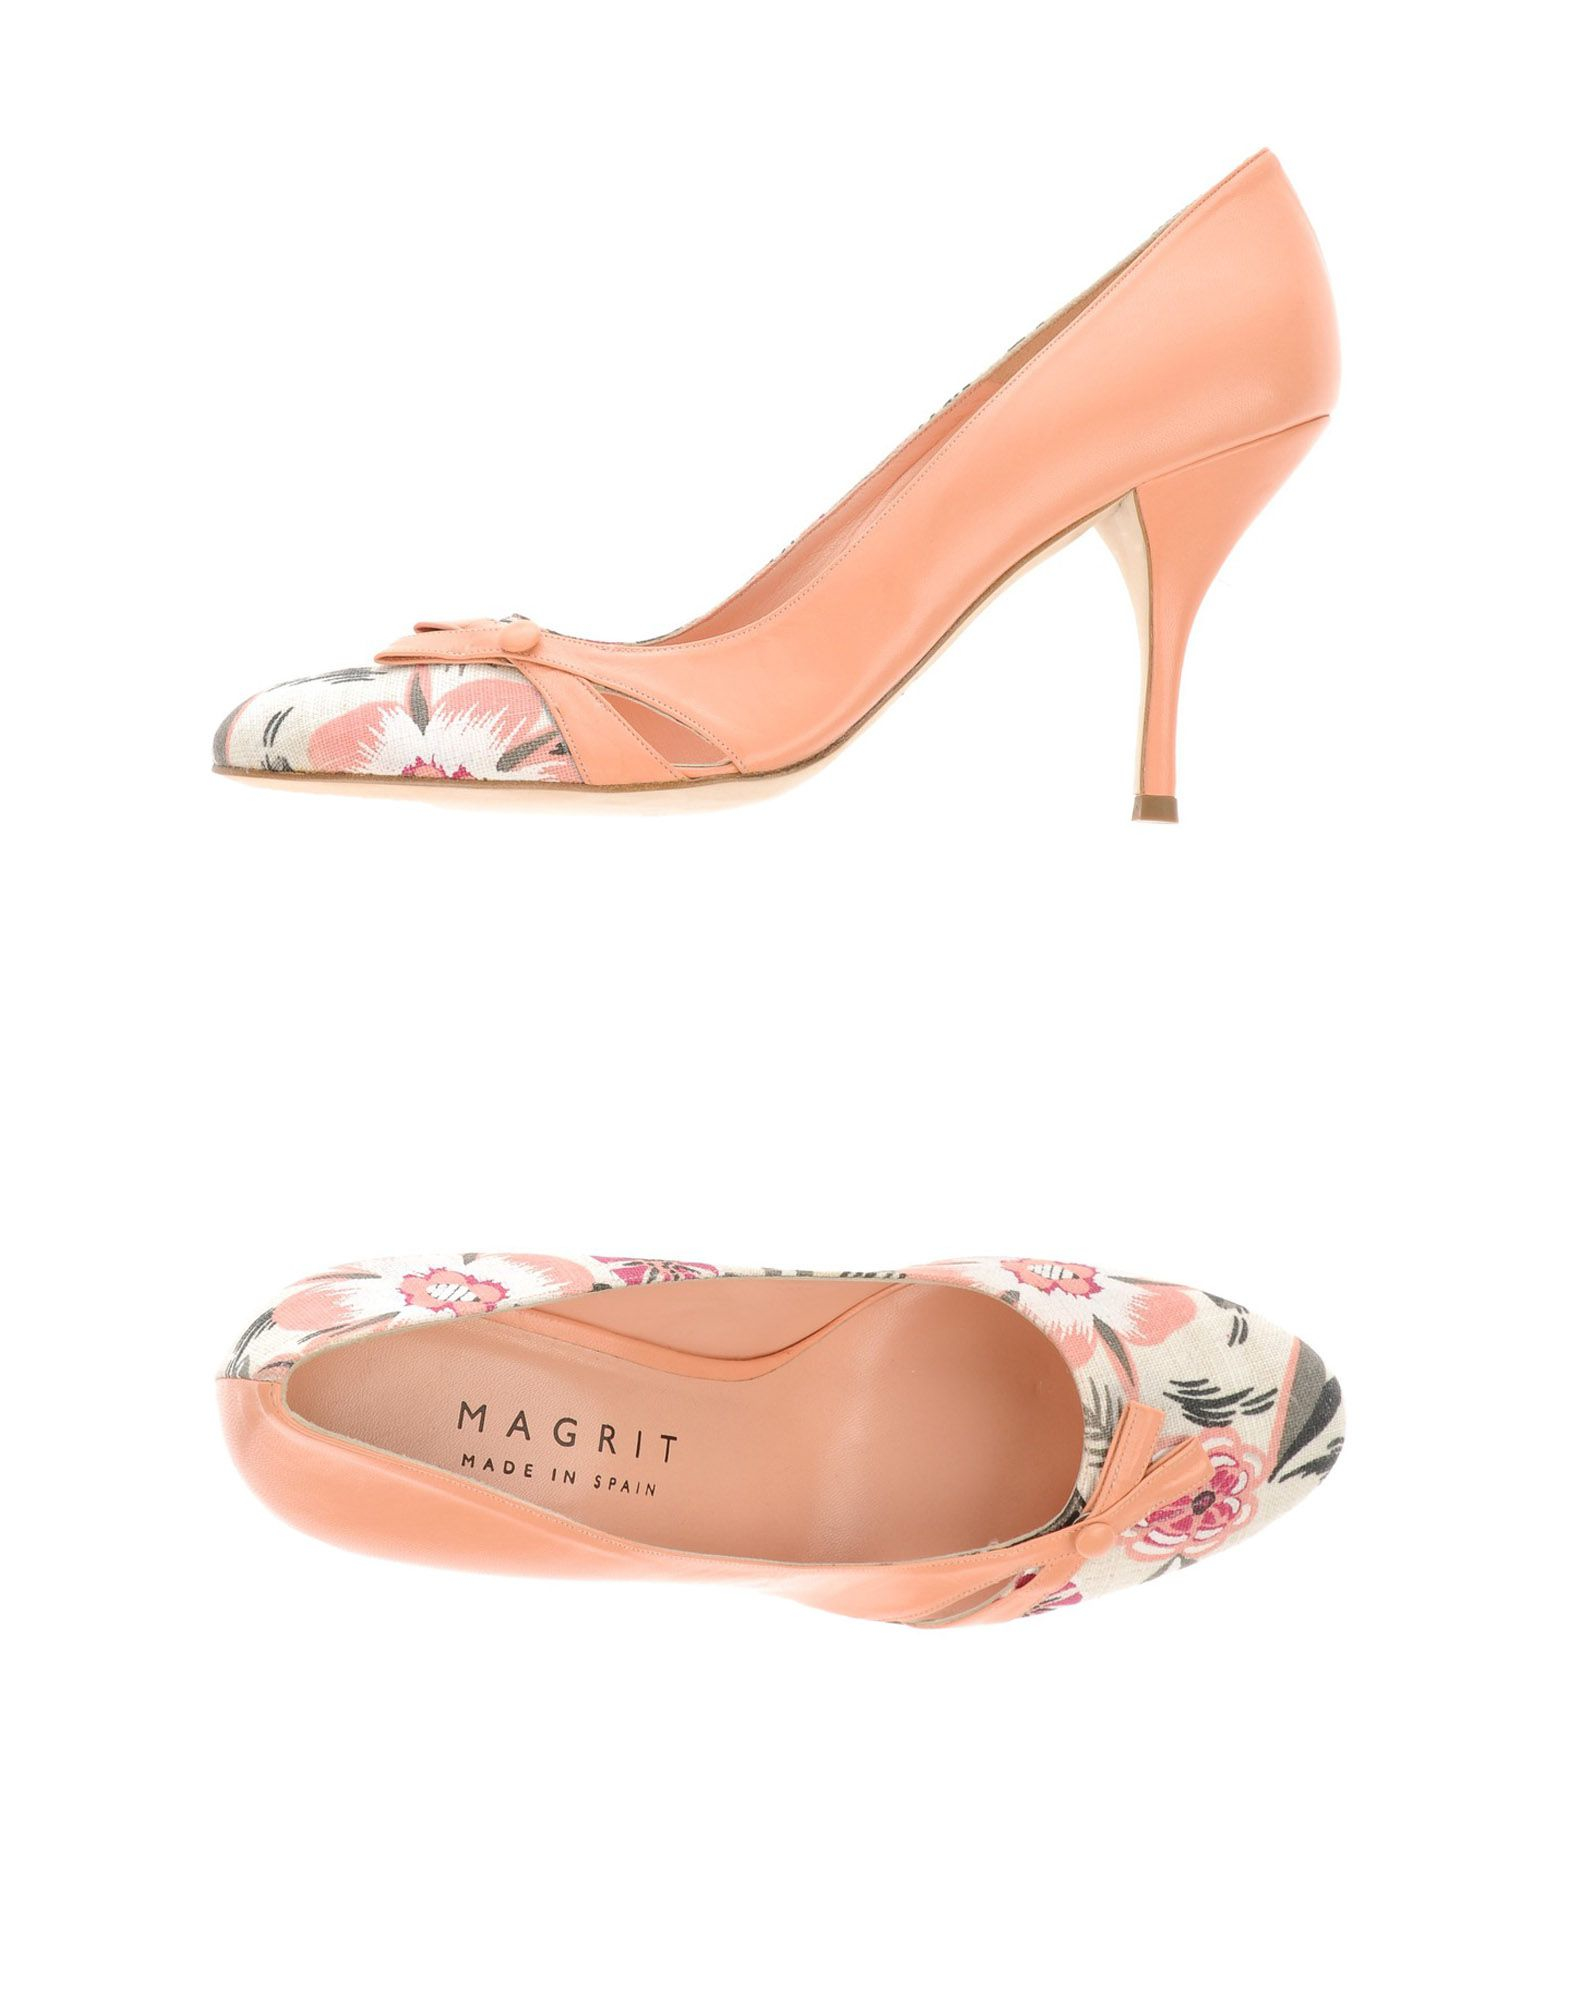 Magrit Shoes Uk